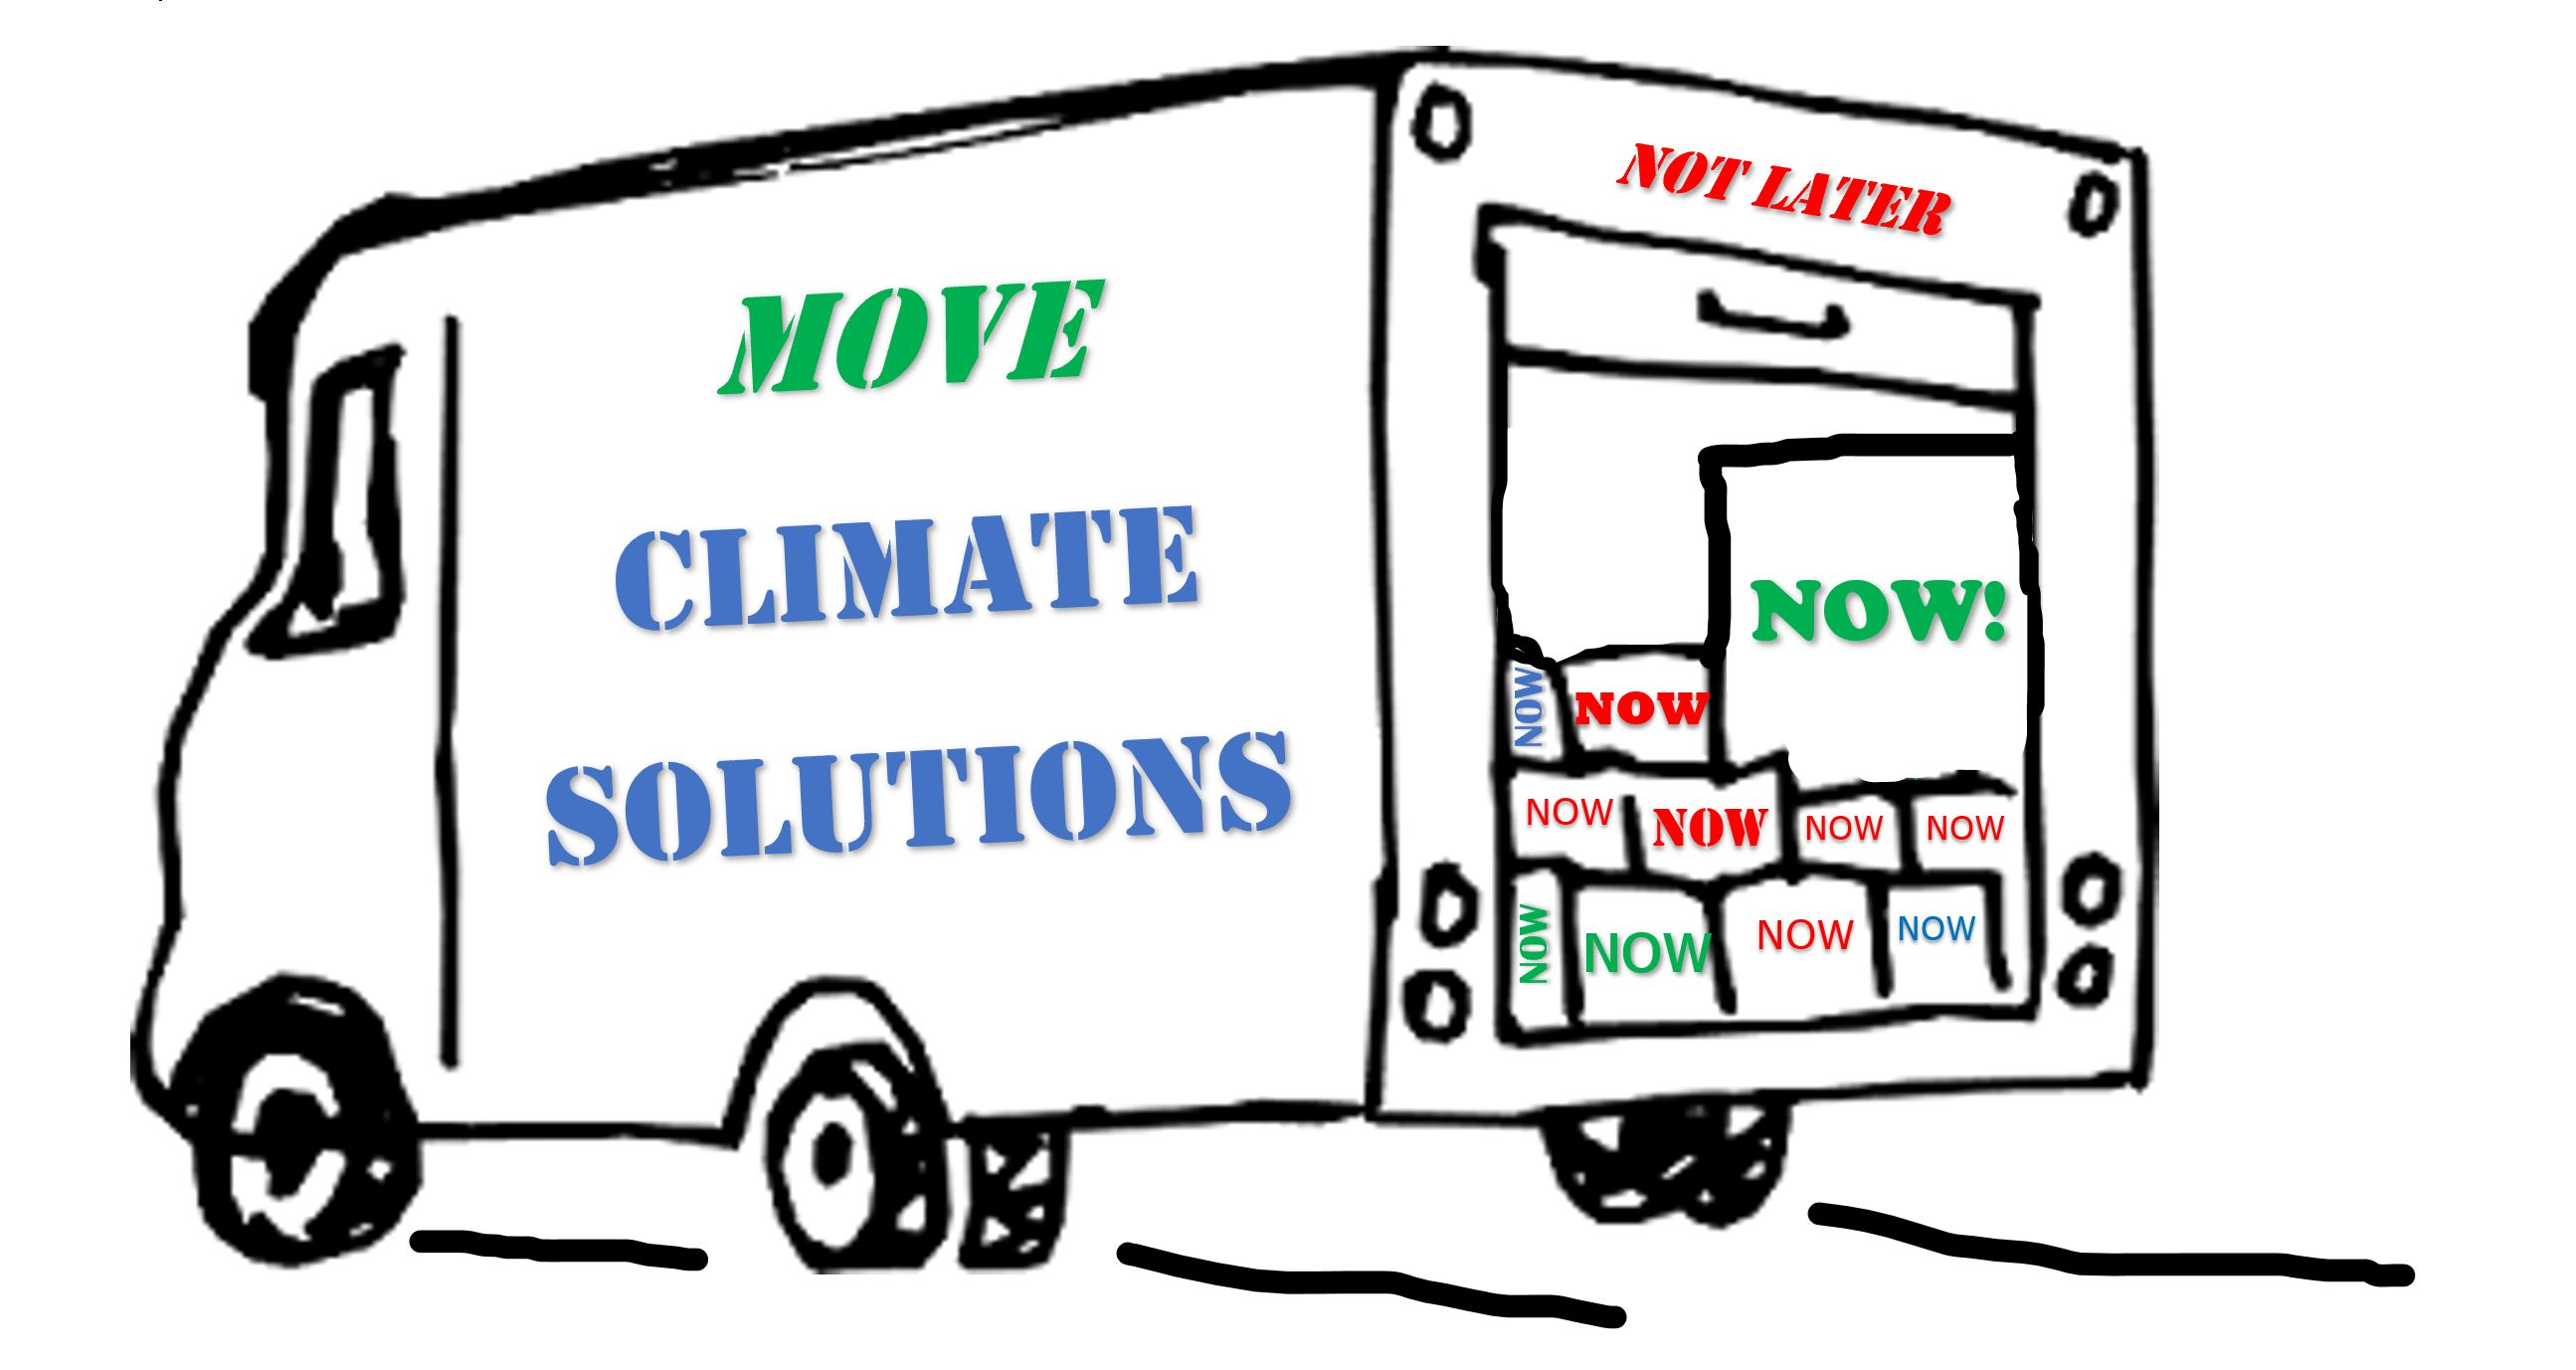 Move_climate_solutions_now_graphic